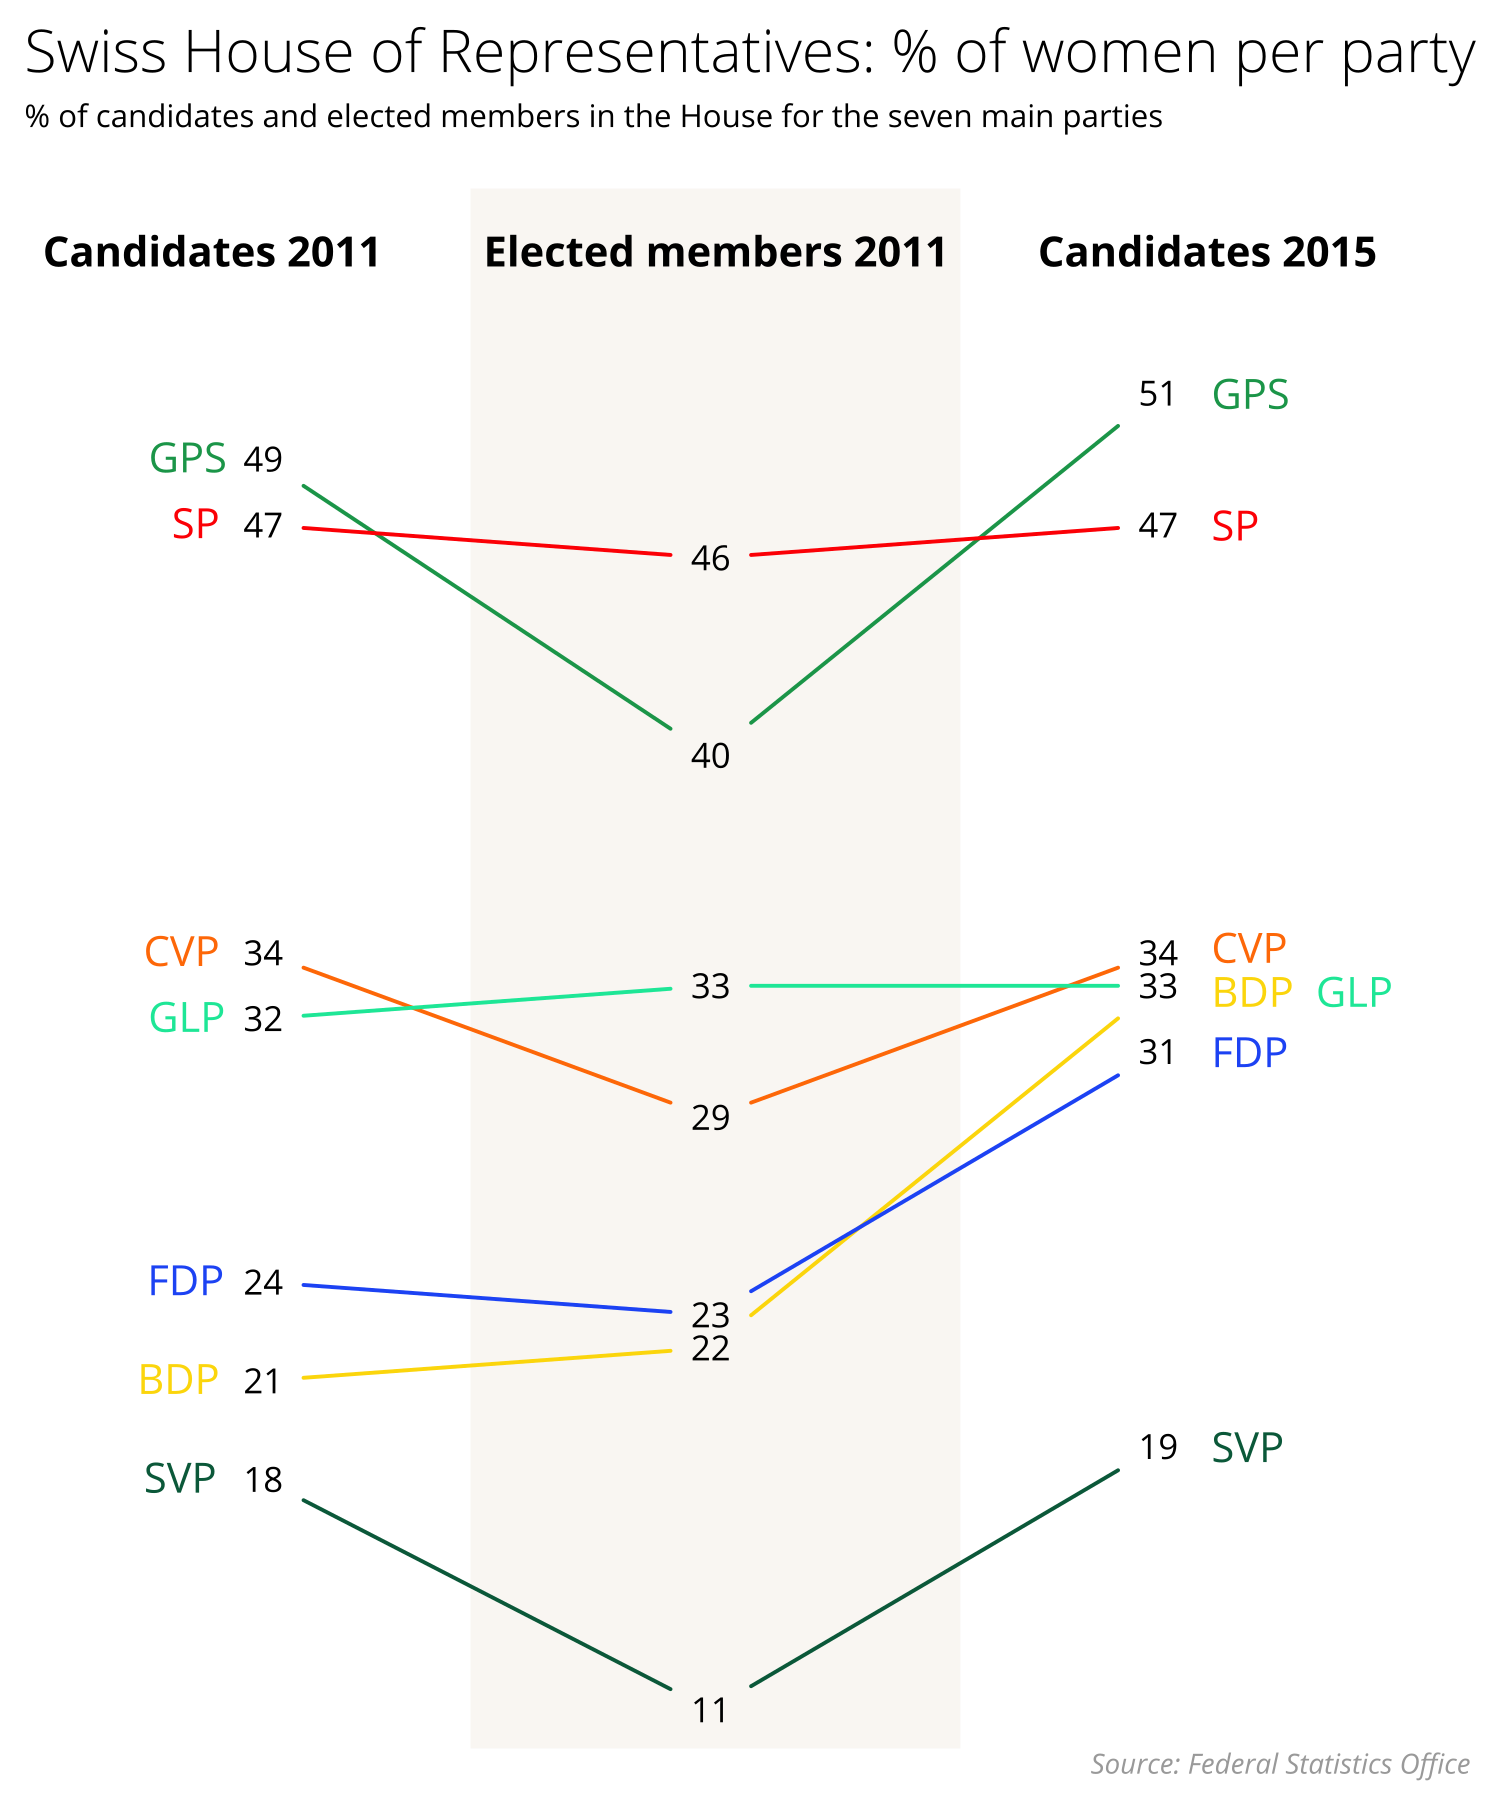 Parties (German-language acronyms)  GPS: Green Party                              SP: Social Democratic Party  CVP: Christian Democratic Party     GLP: Liberal Green Party  FDP: Radical Party                            BDP: Conservative Democratic Party  SVP: Swiss People's Party